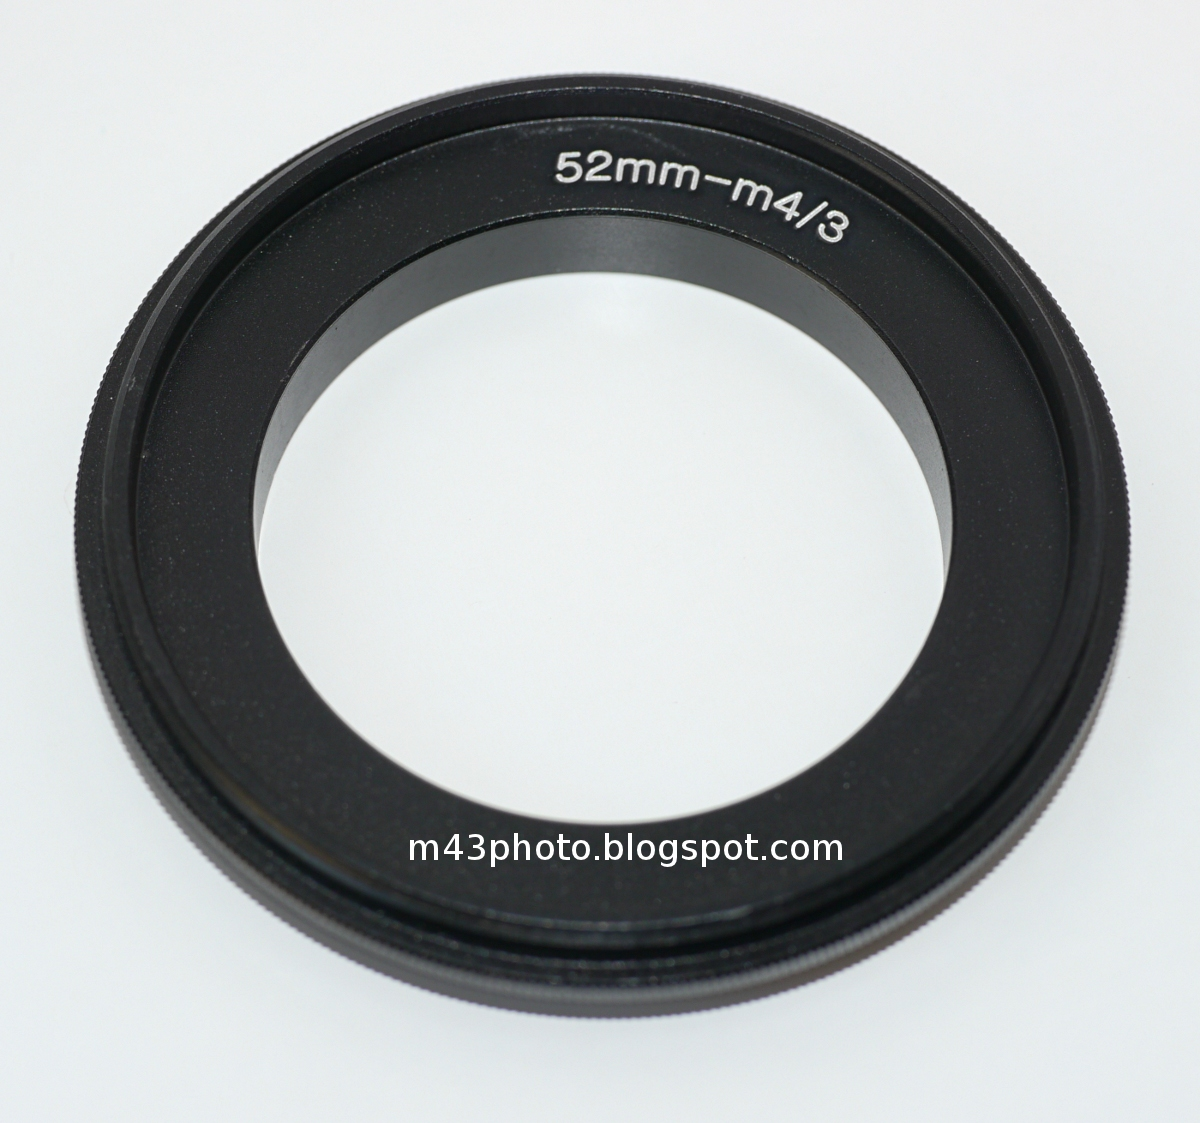 Micro 4 3rds Photography Reverser Ring For Macro Lens Hood Cameras 52mm Screw Mount On The Other Side It Has A Thread